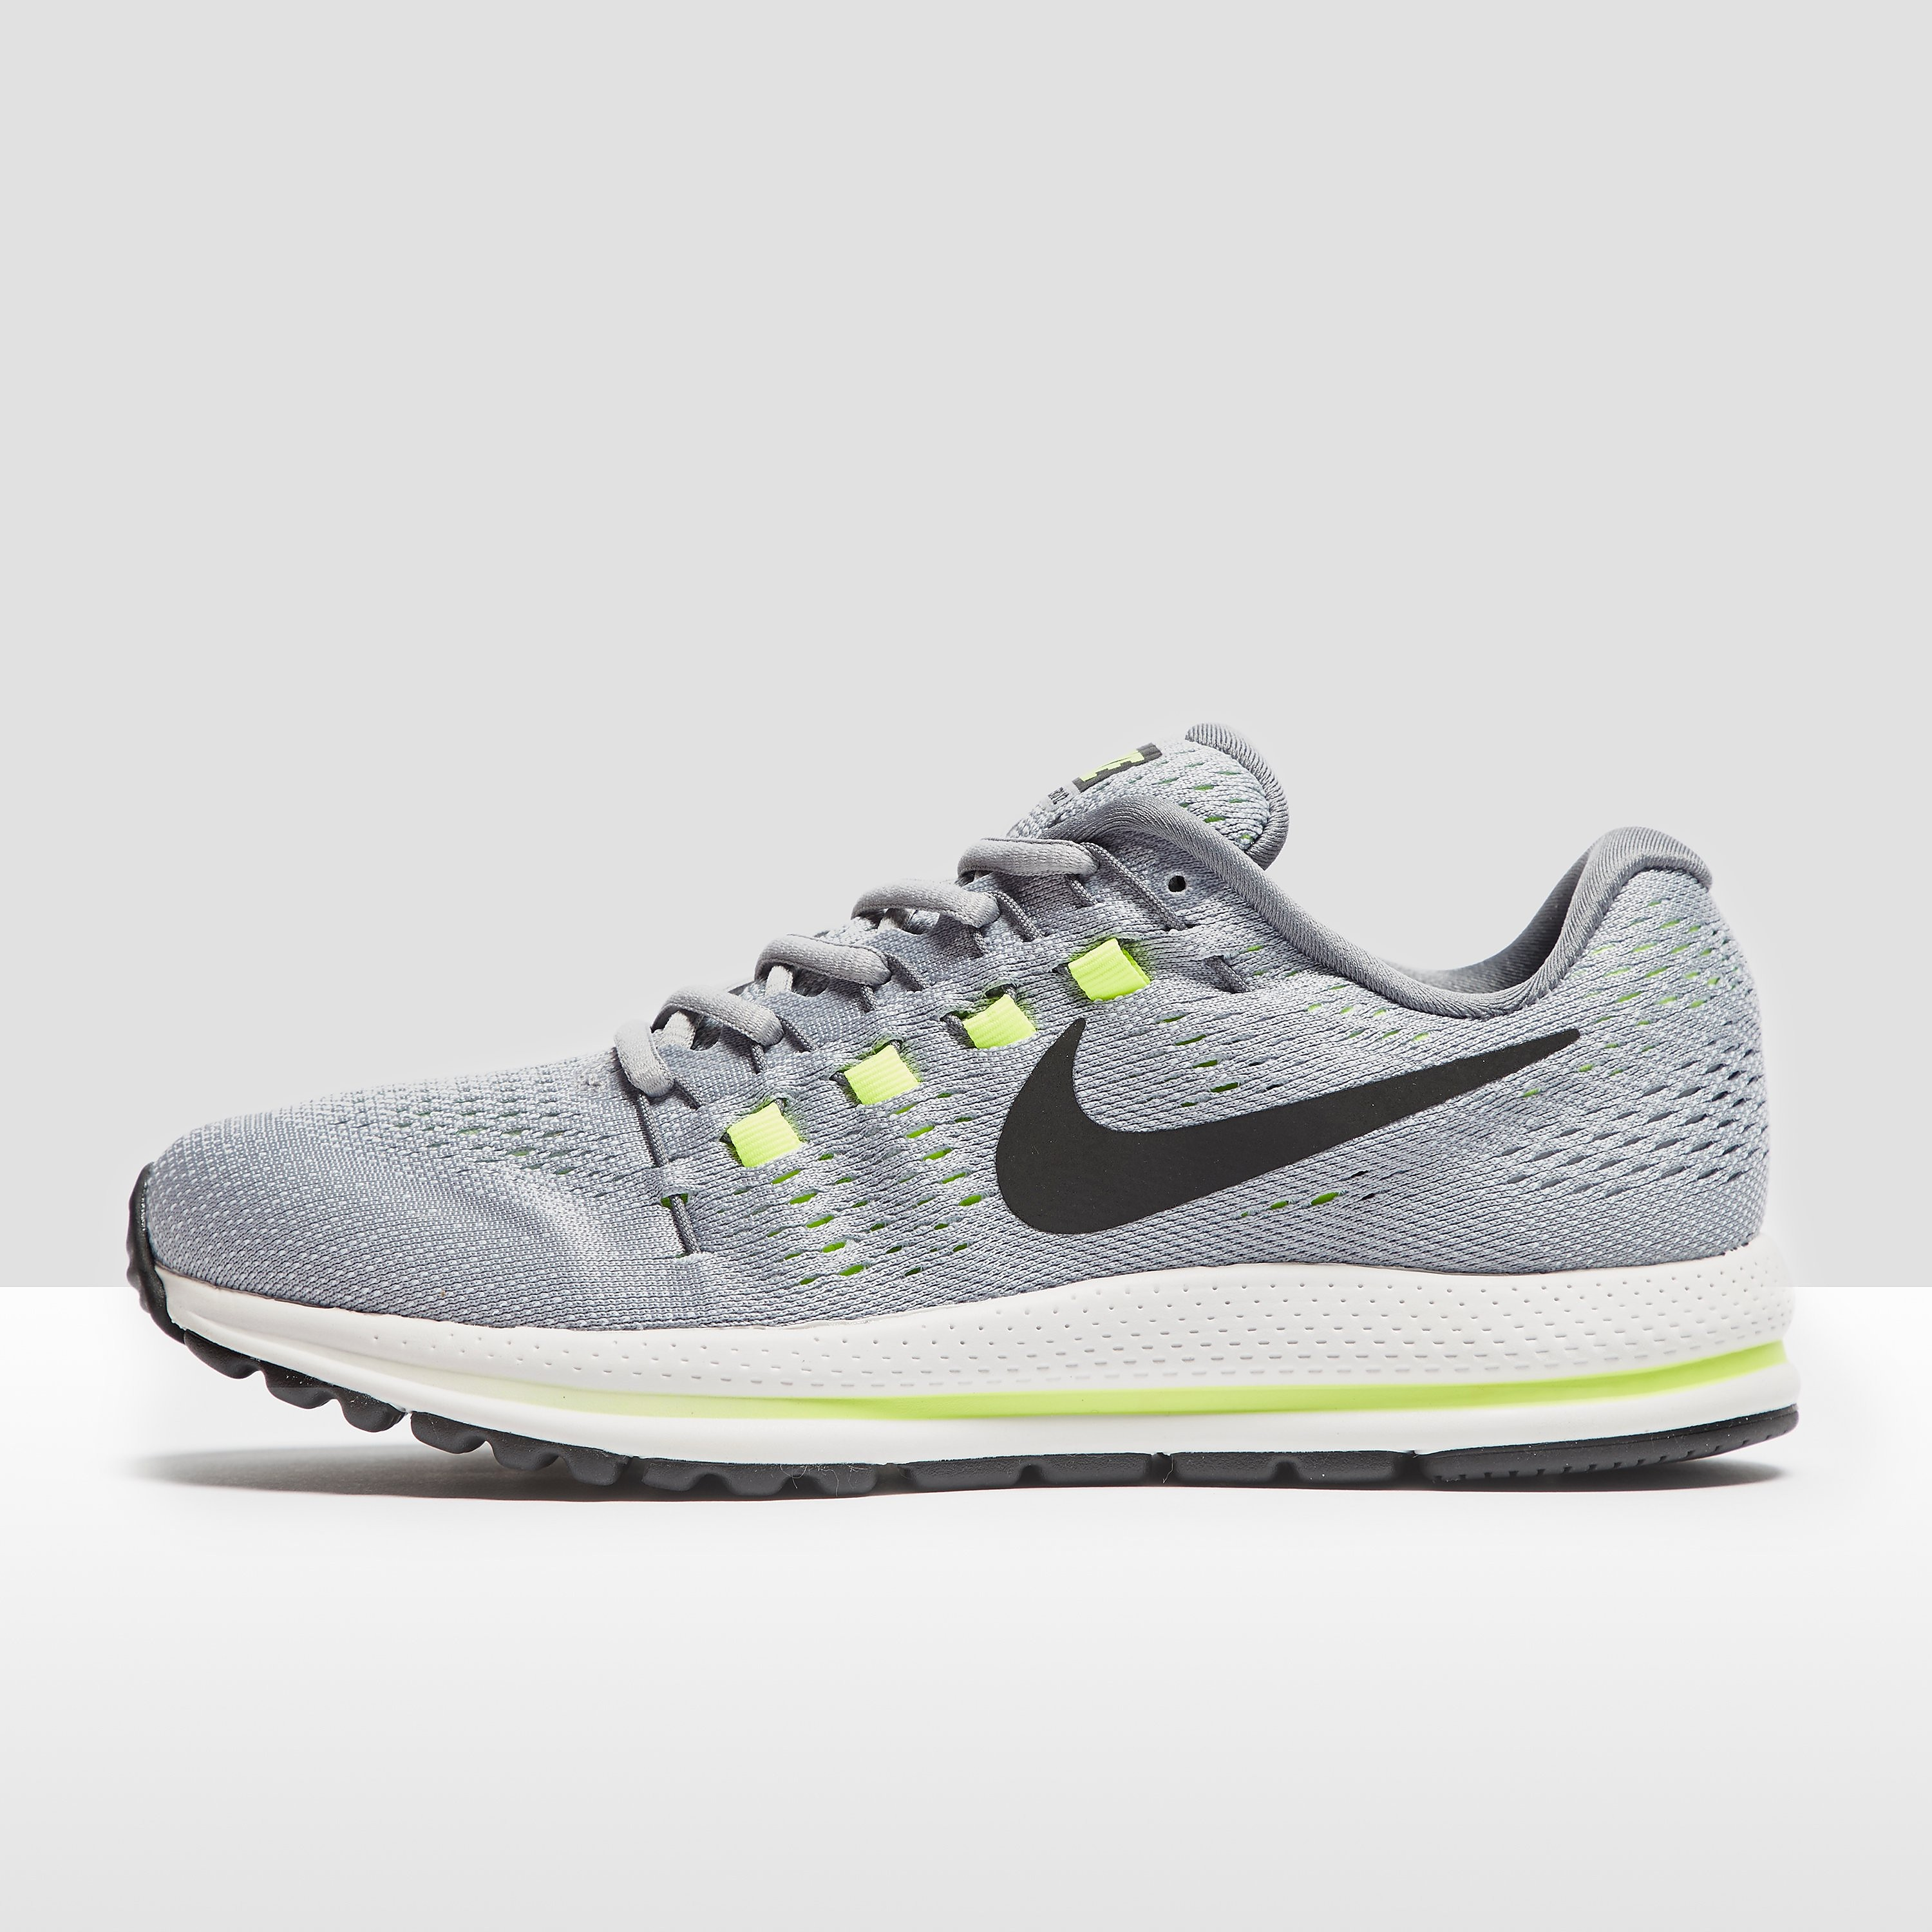 Nike Air Zoom Vomero 12 Men's Running Shoes